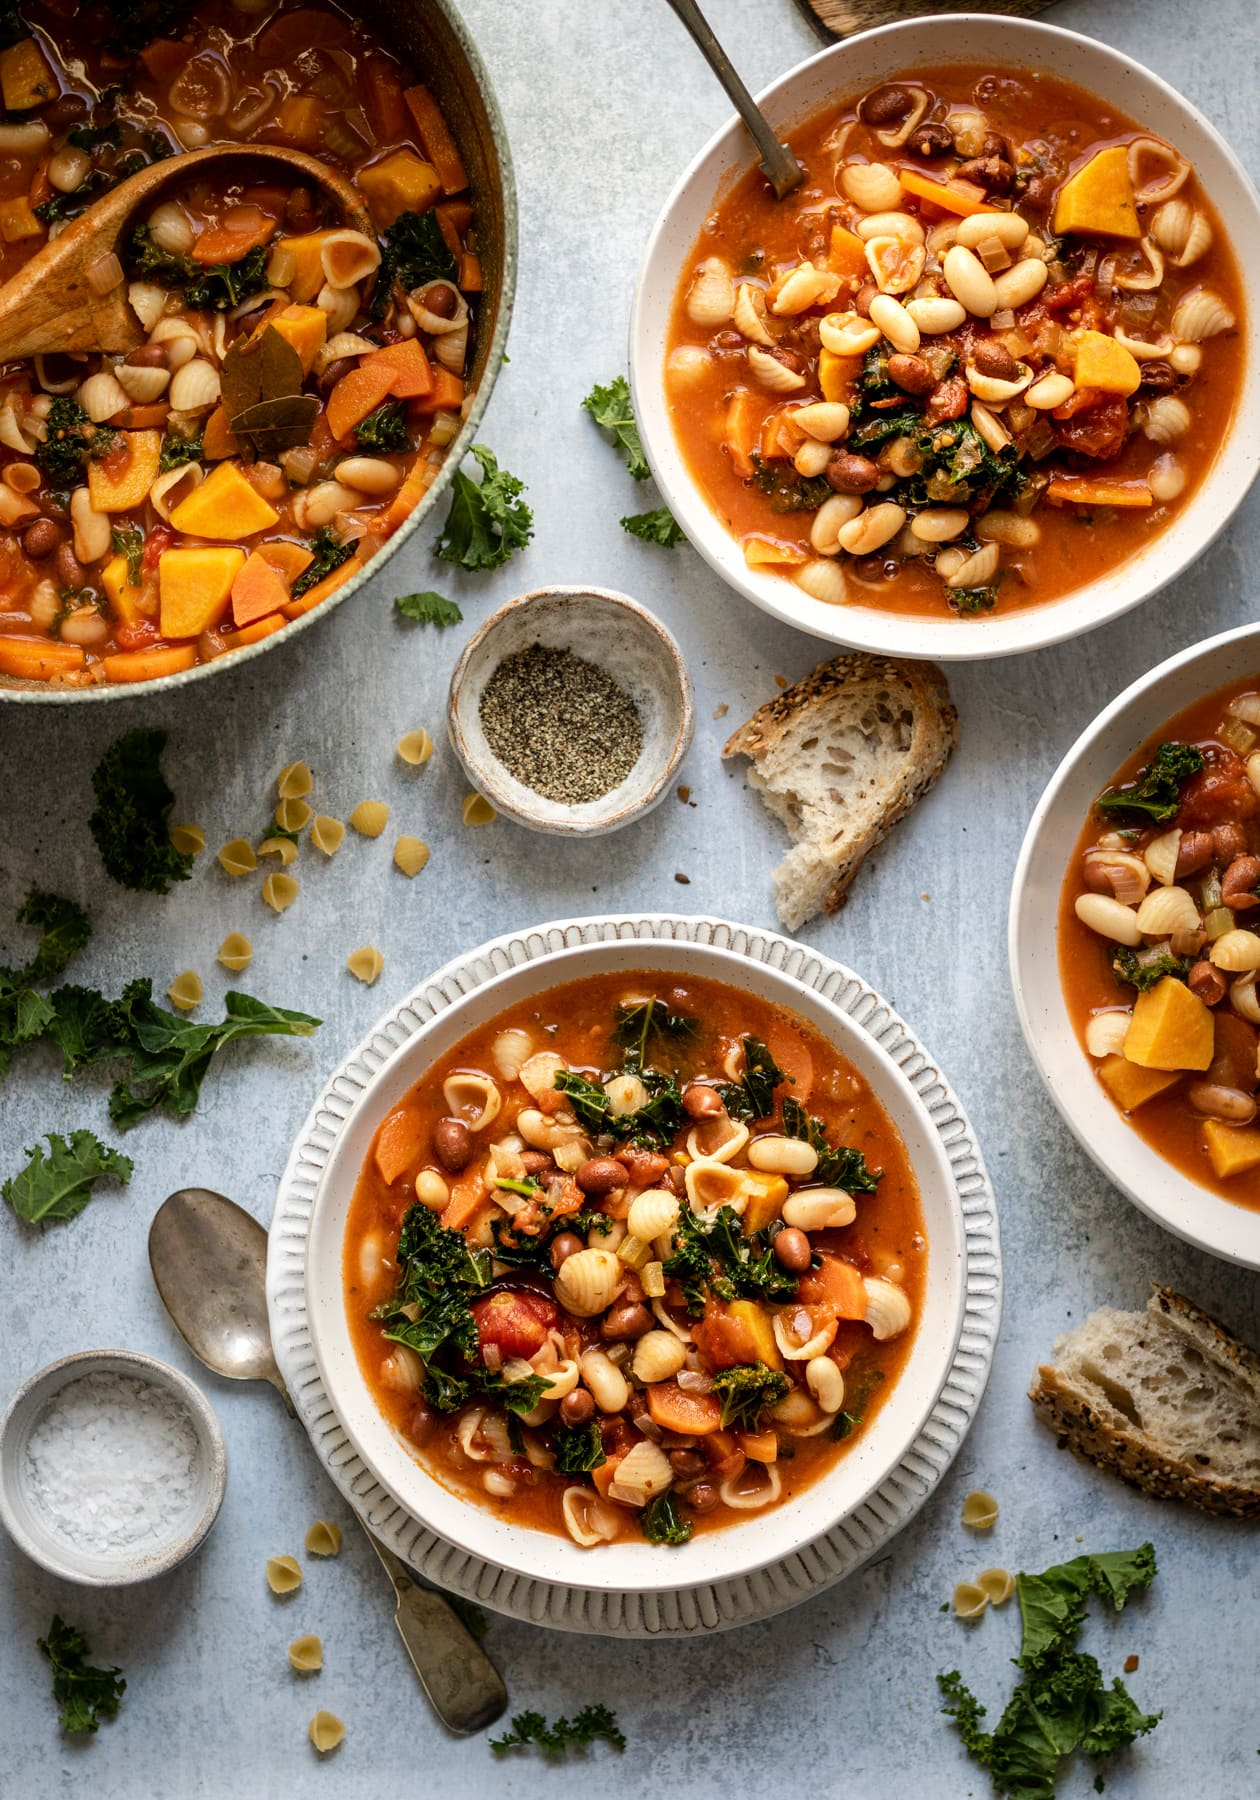 vegetarian minestrone soup with beans and kale in bowls